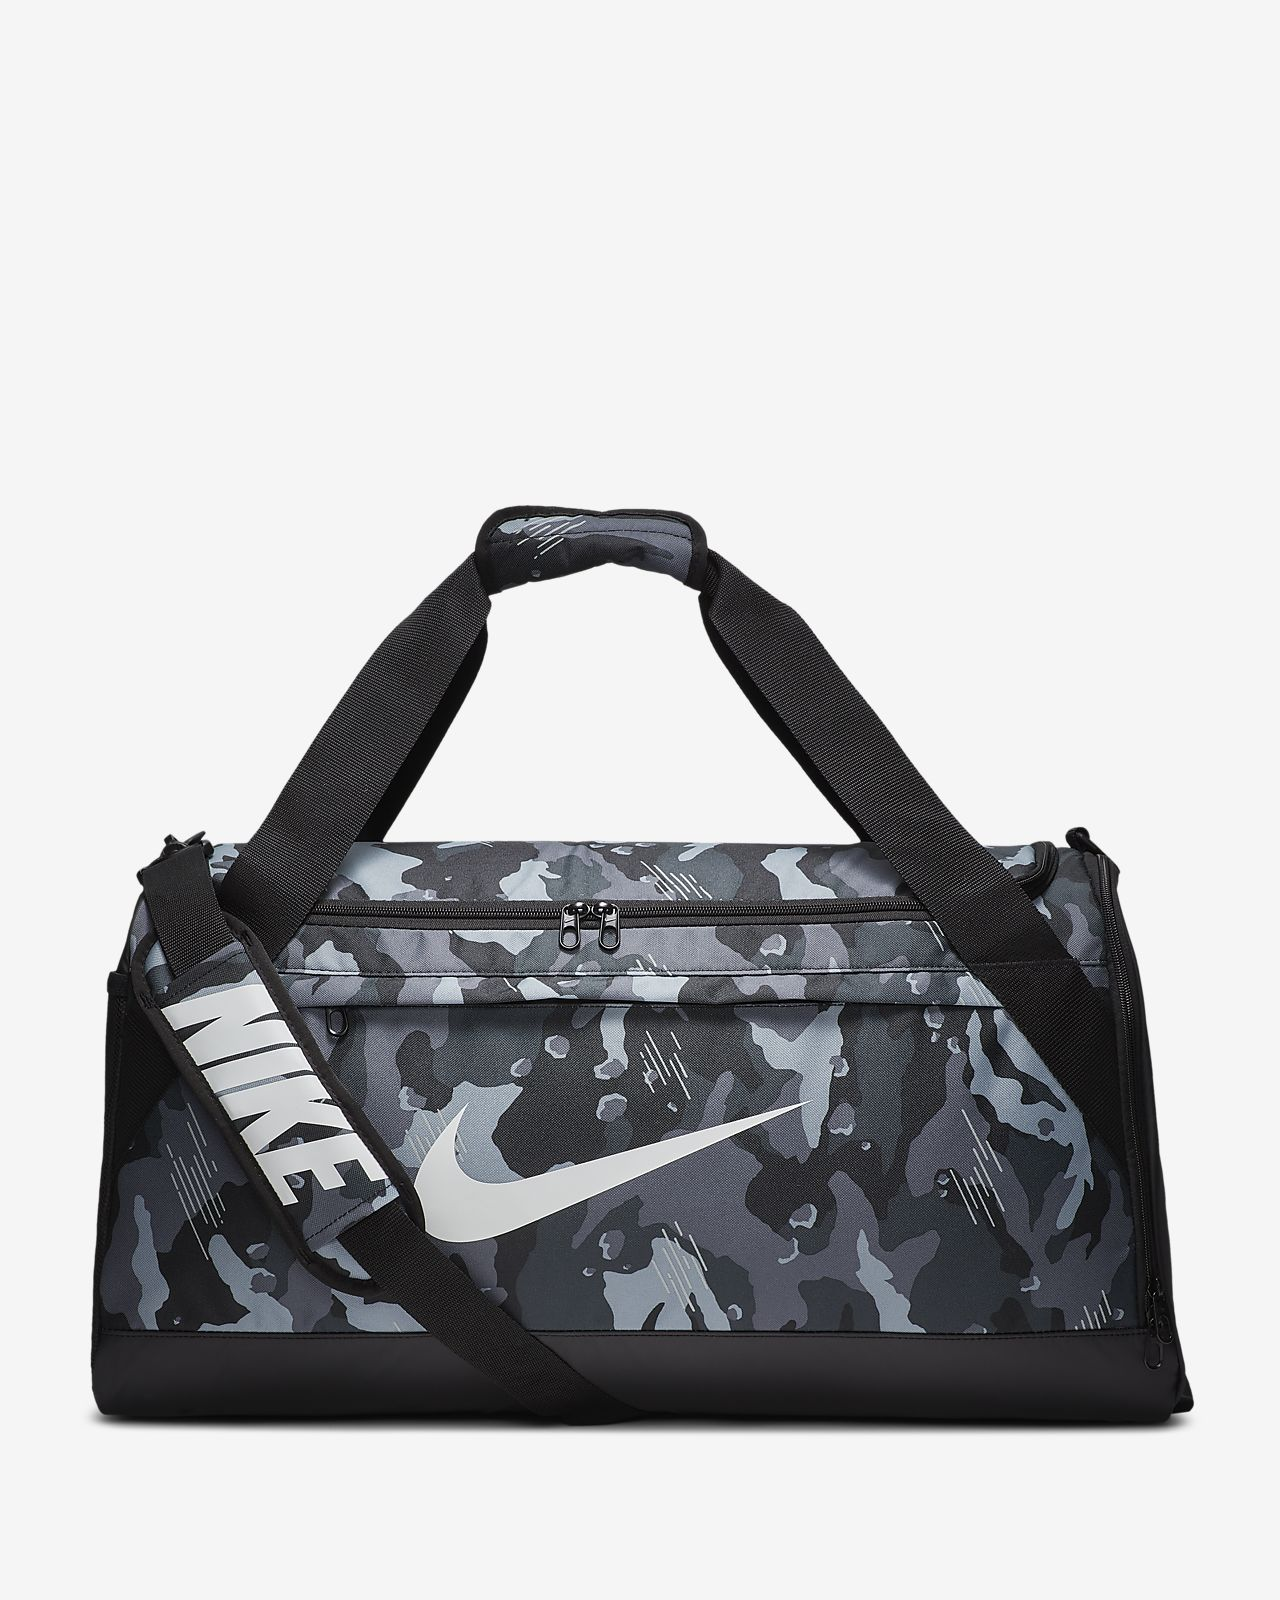 454f531d839 Nike Brasilia Printed Training Duffel Bag (Medium). Nike.com